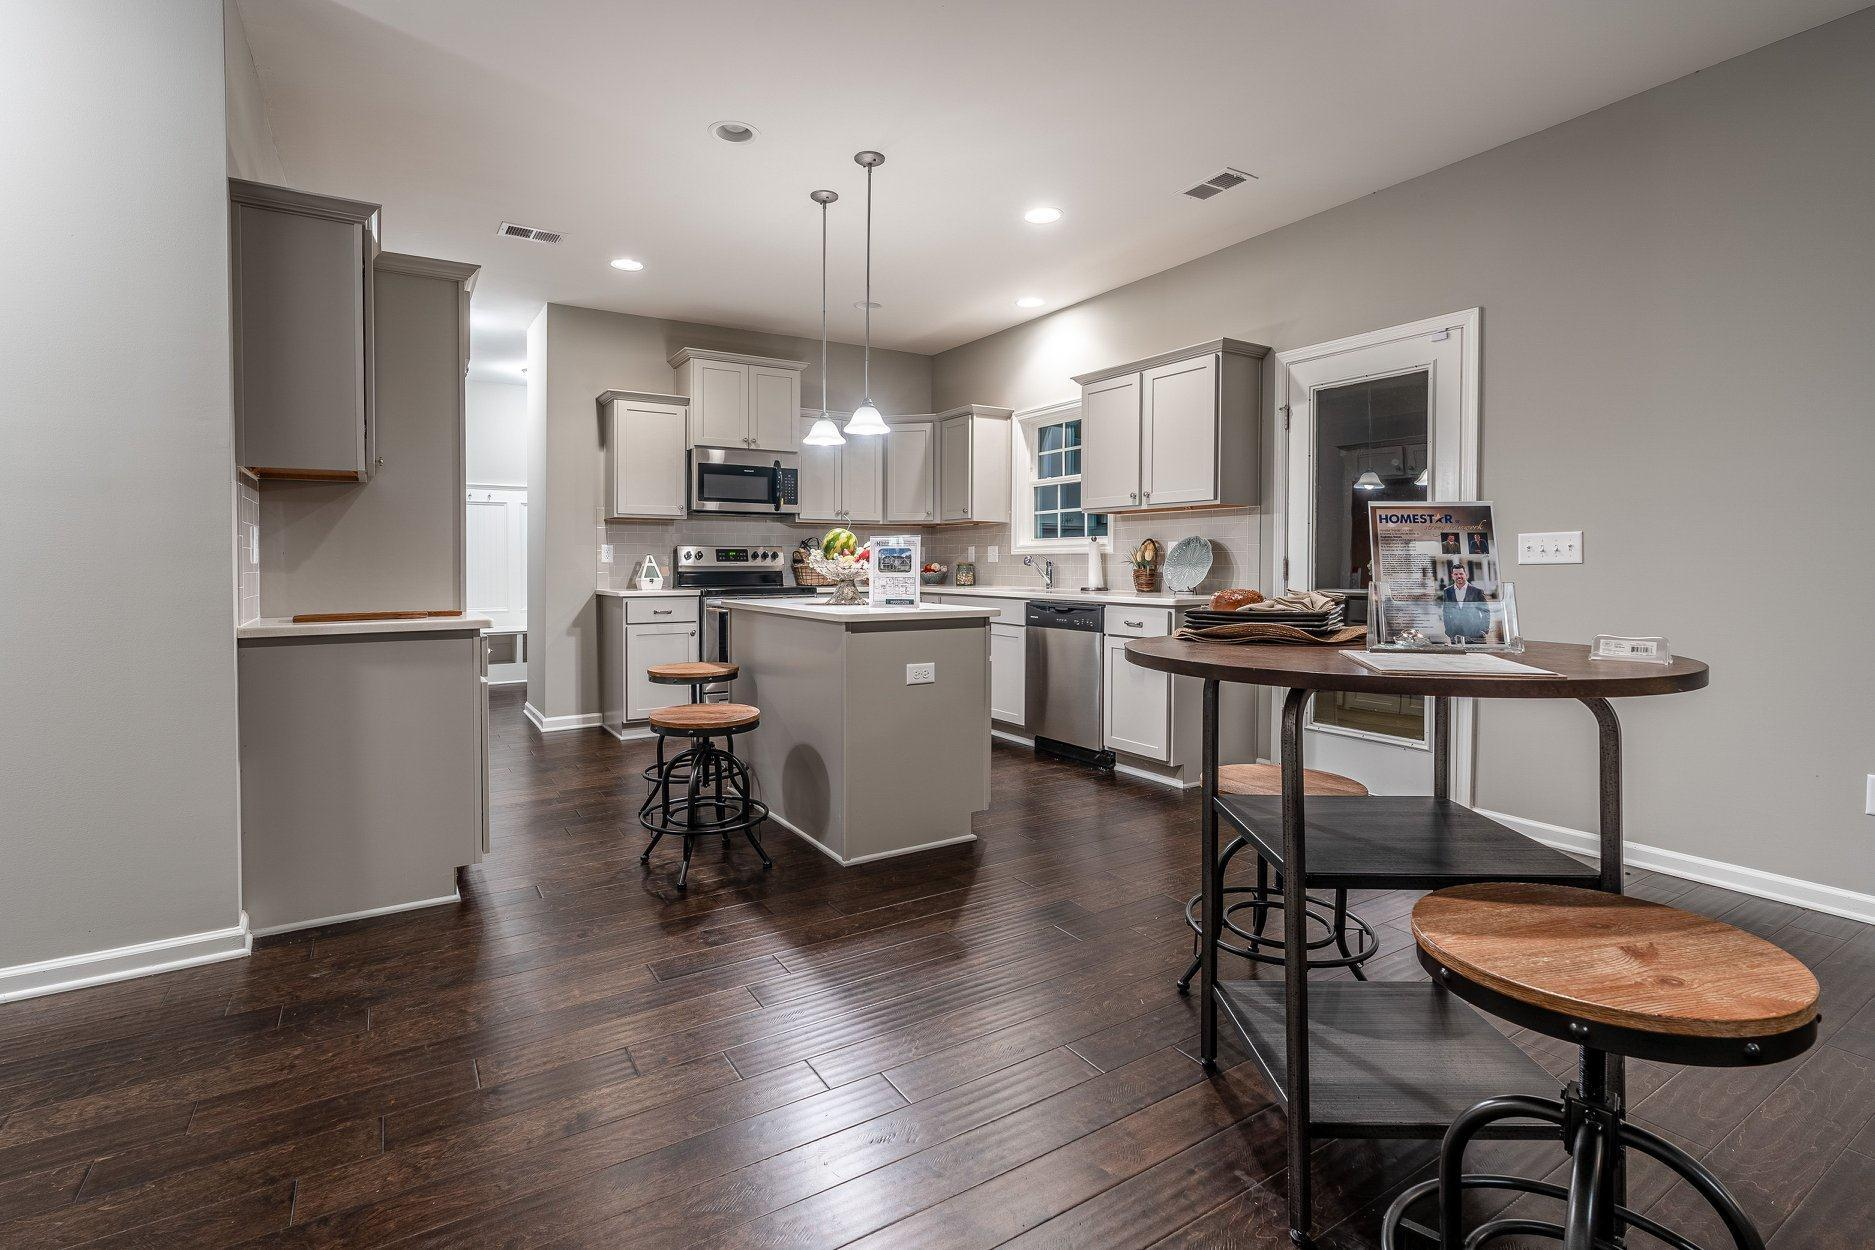 Kitchen featured in the Harrison By Hughston Homes in Macon, GA